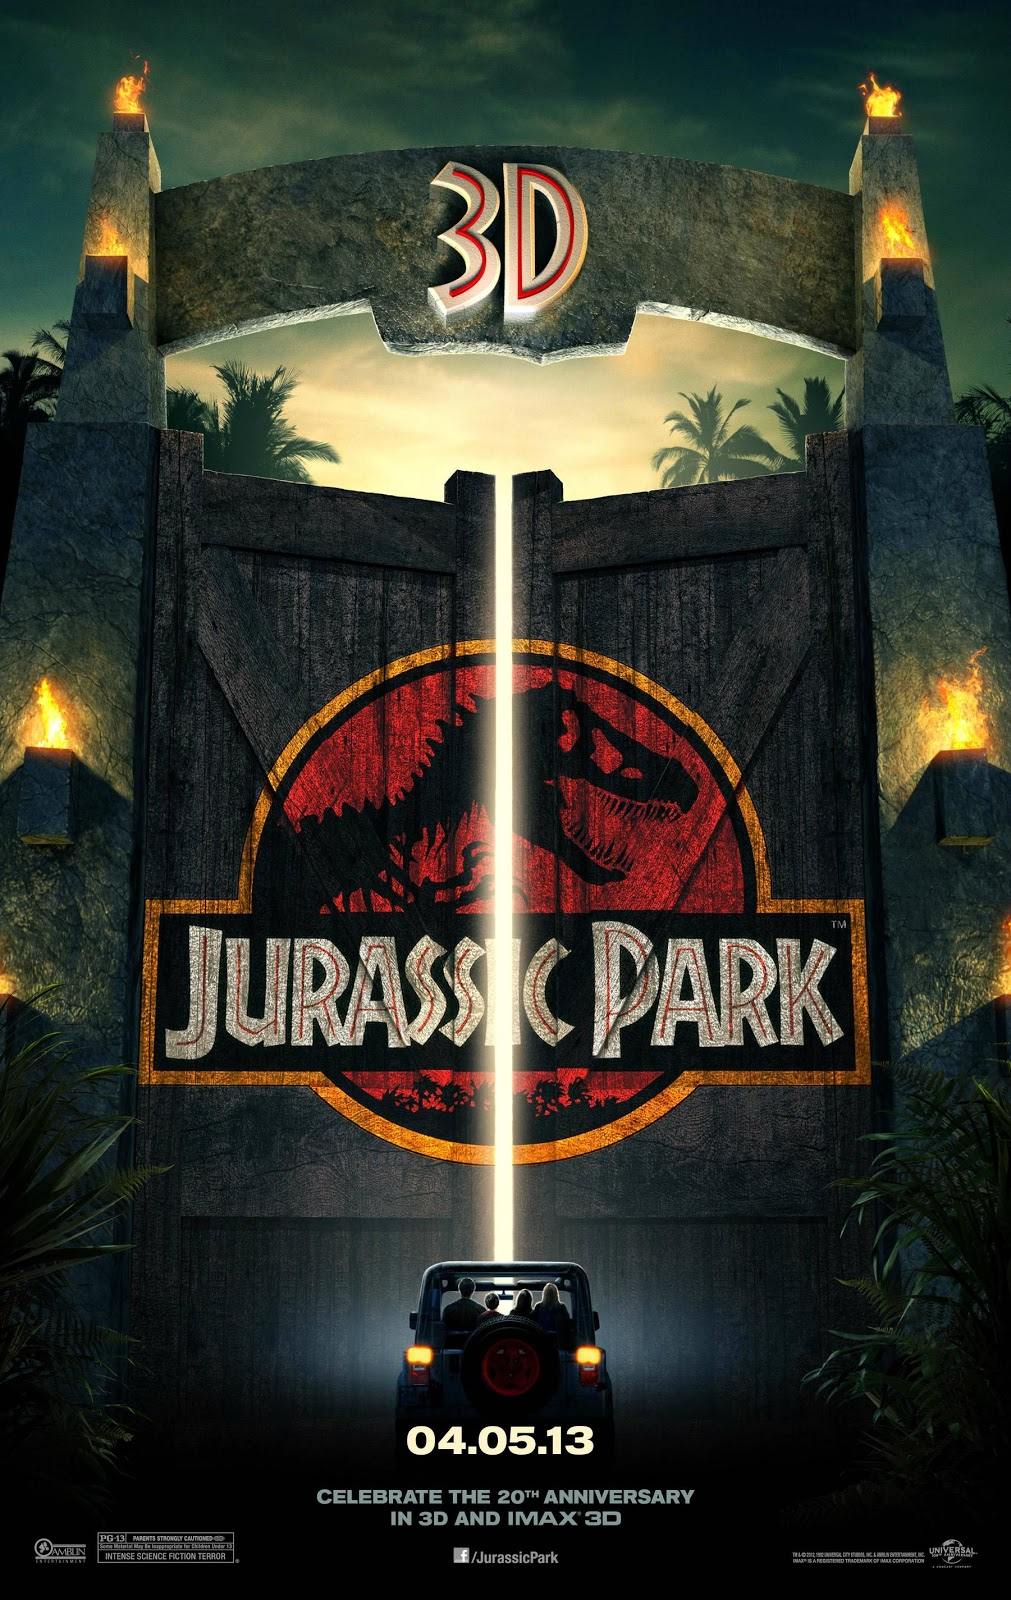 Jurassic Park 3D - Poster (2013)